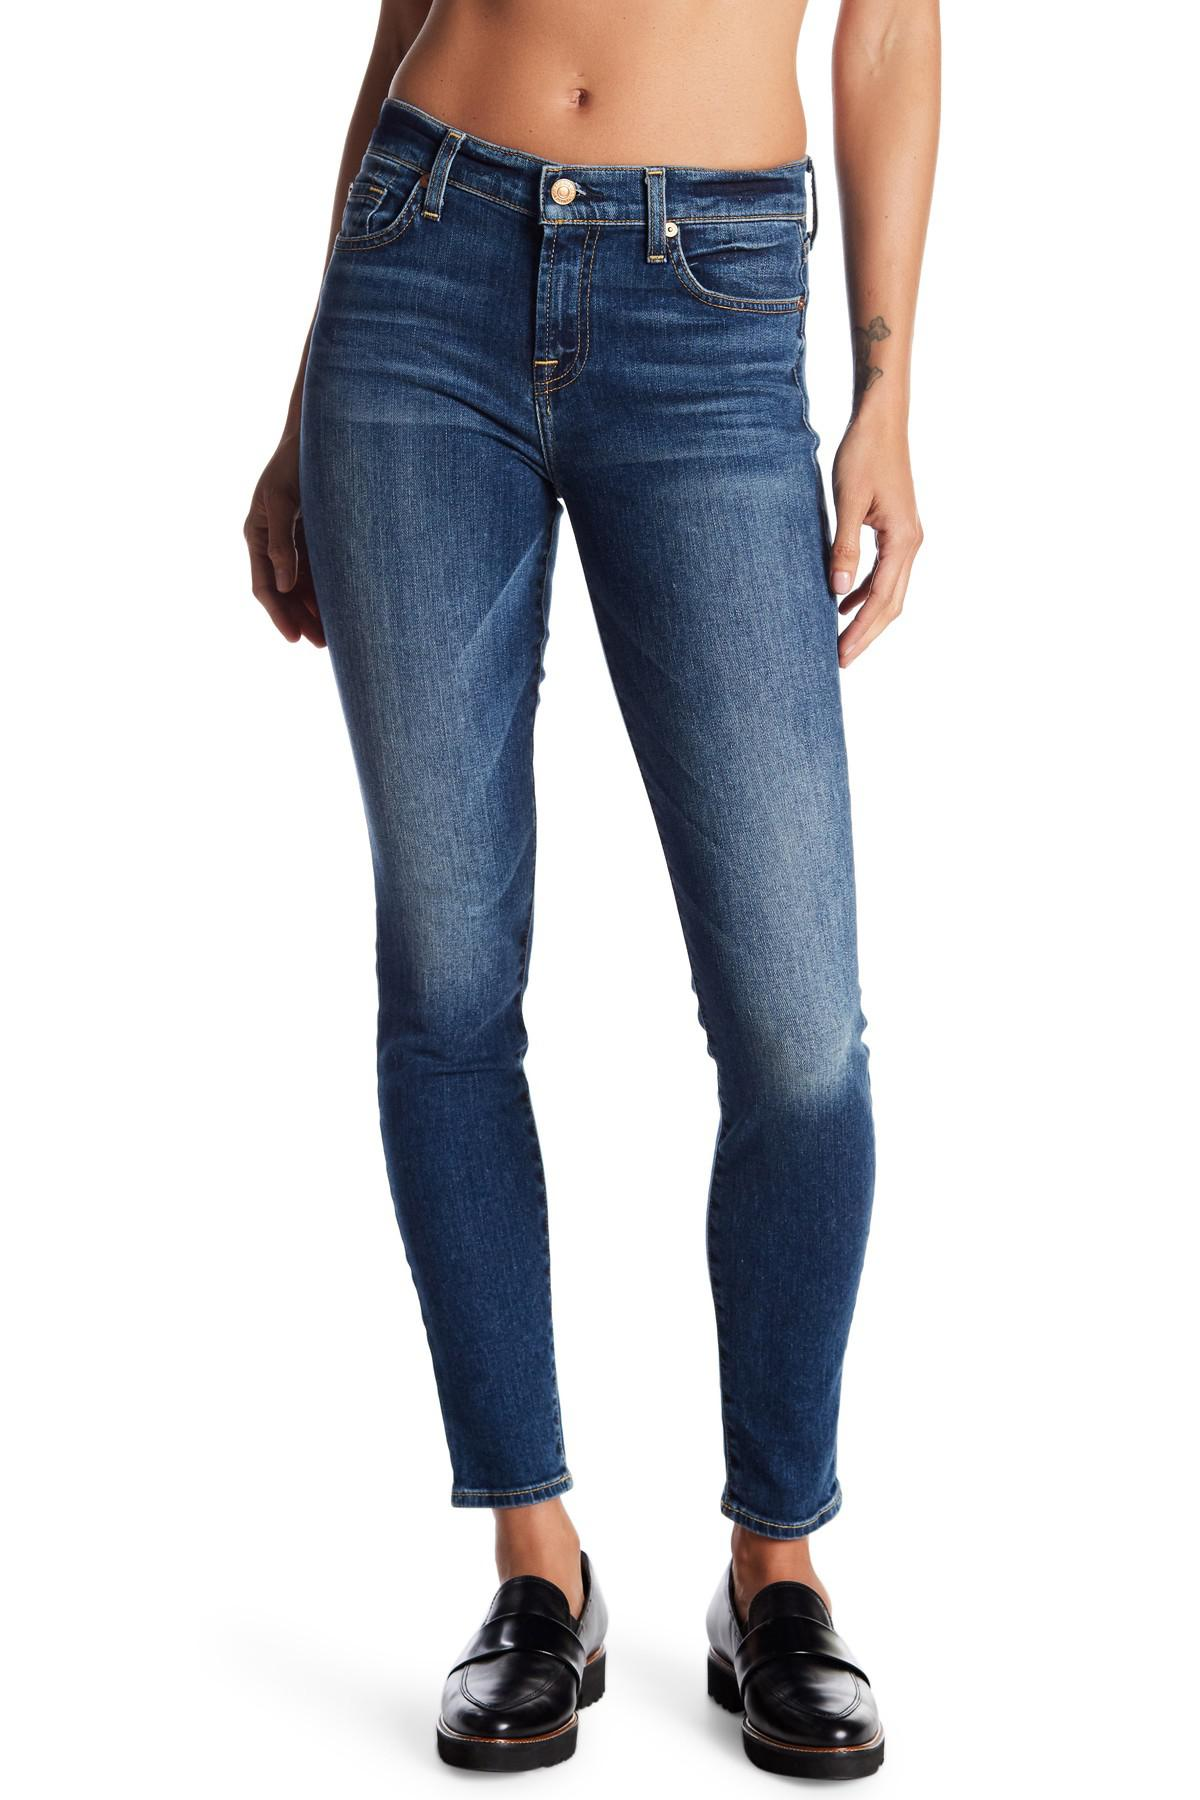 lyst 7 for all mankind the skinny jeans in blue. Black Bedroom Furniture Sets. Home Design Ideas